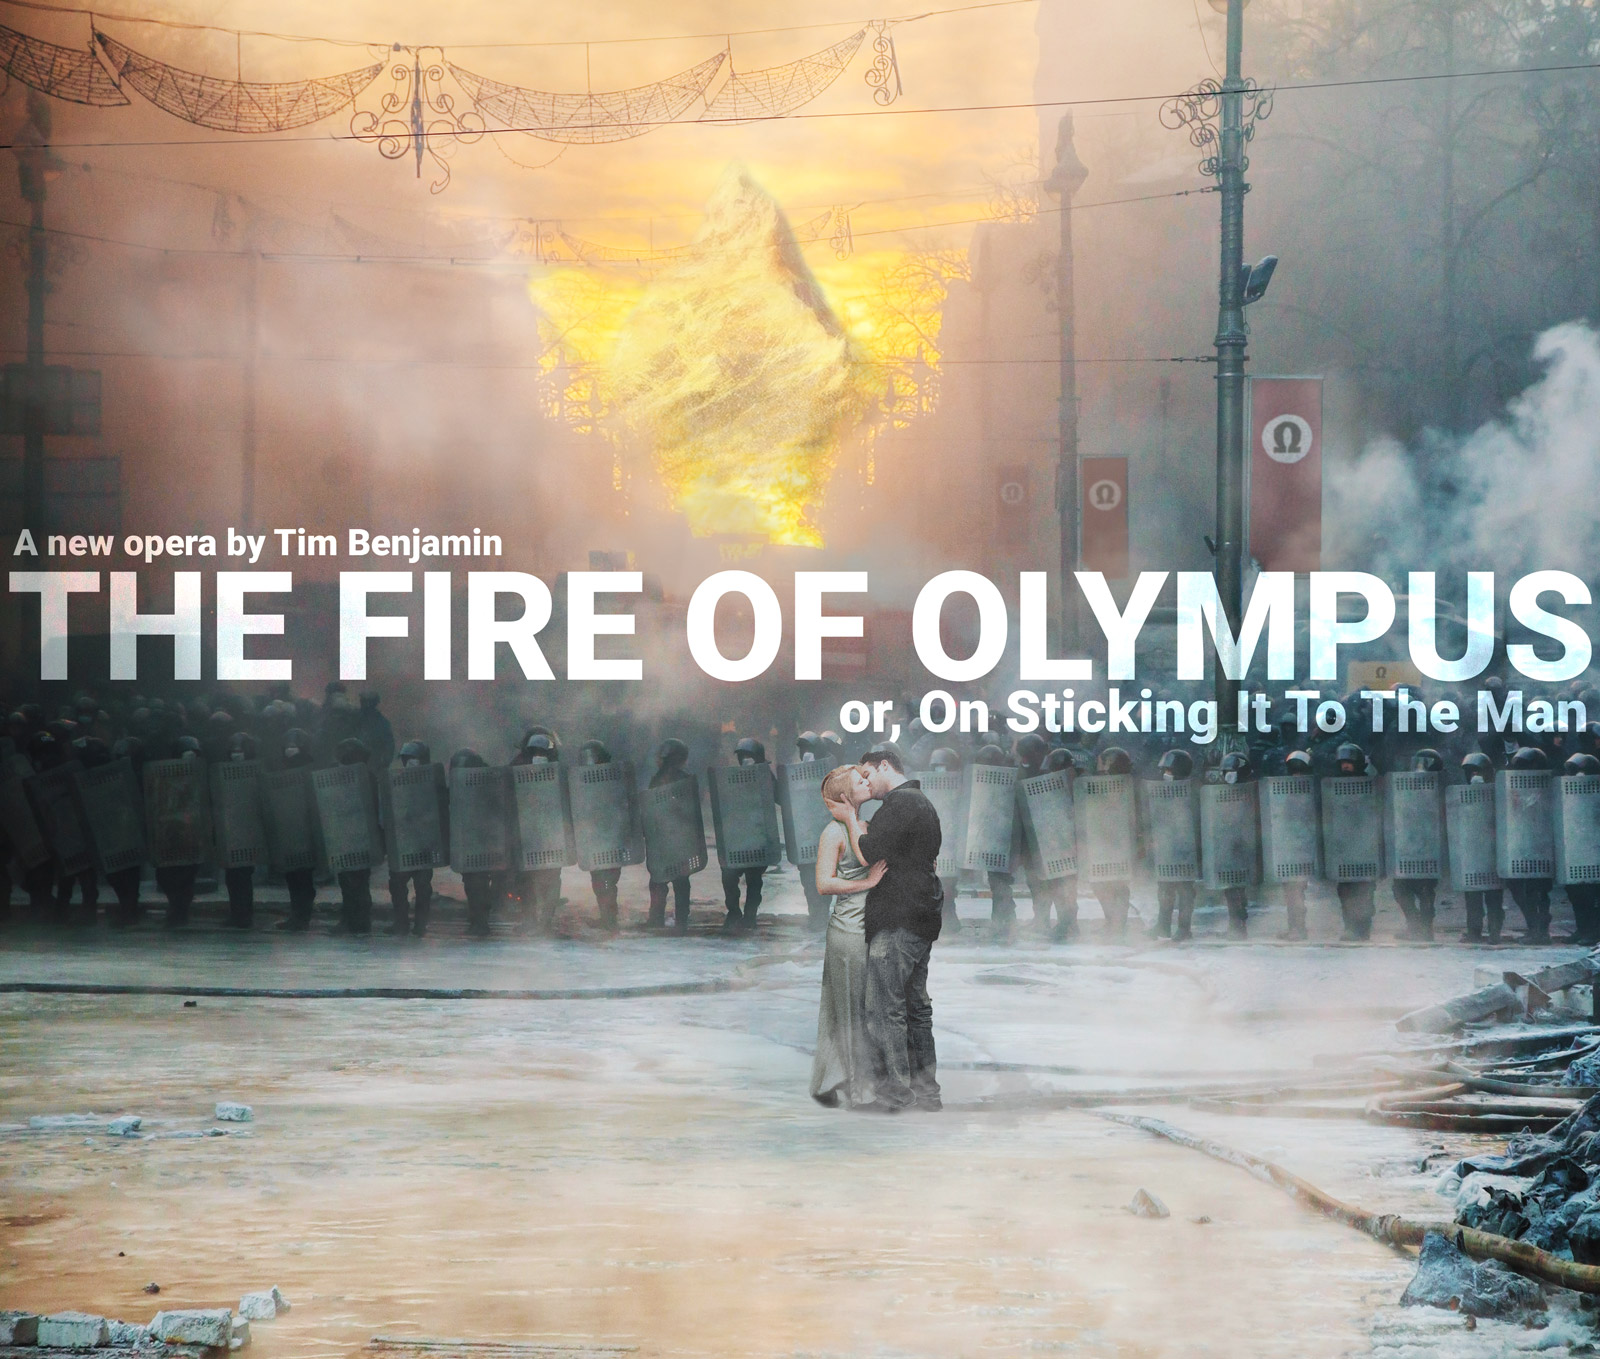 The Fire of Olyumpus